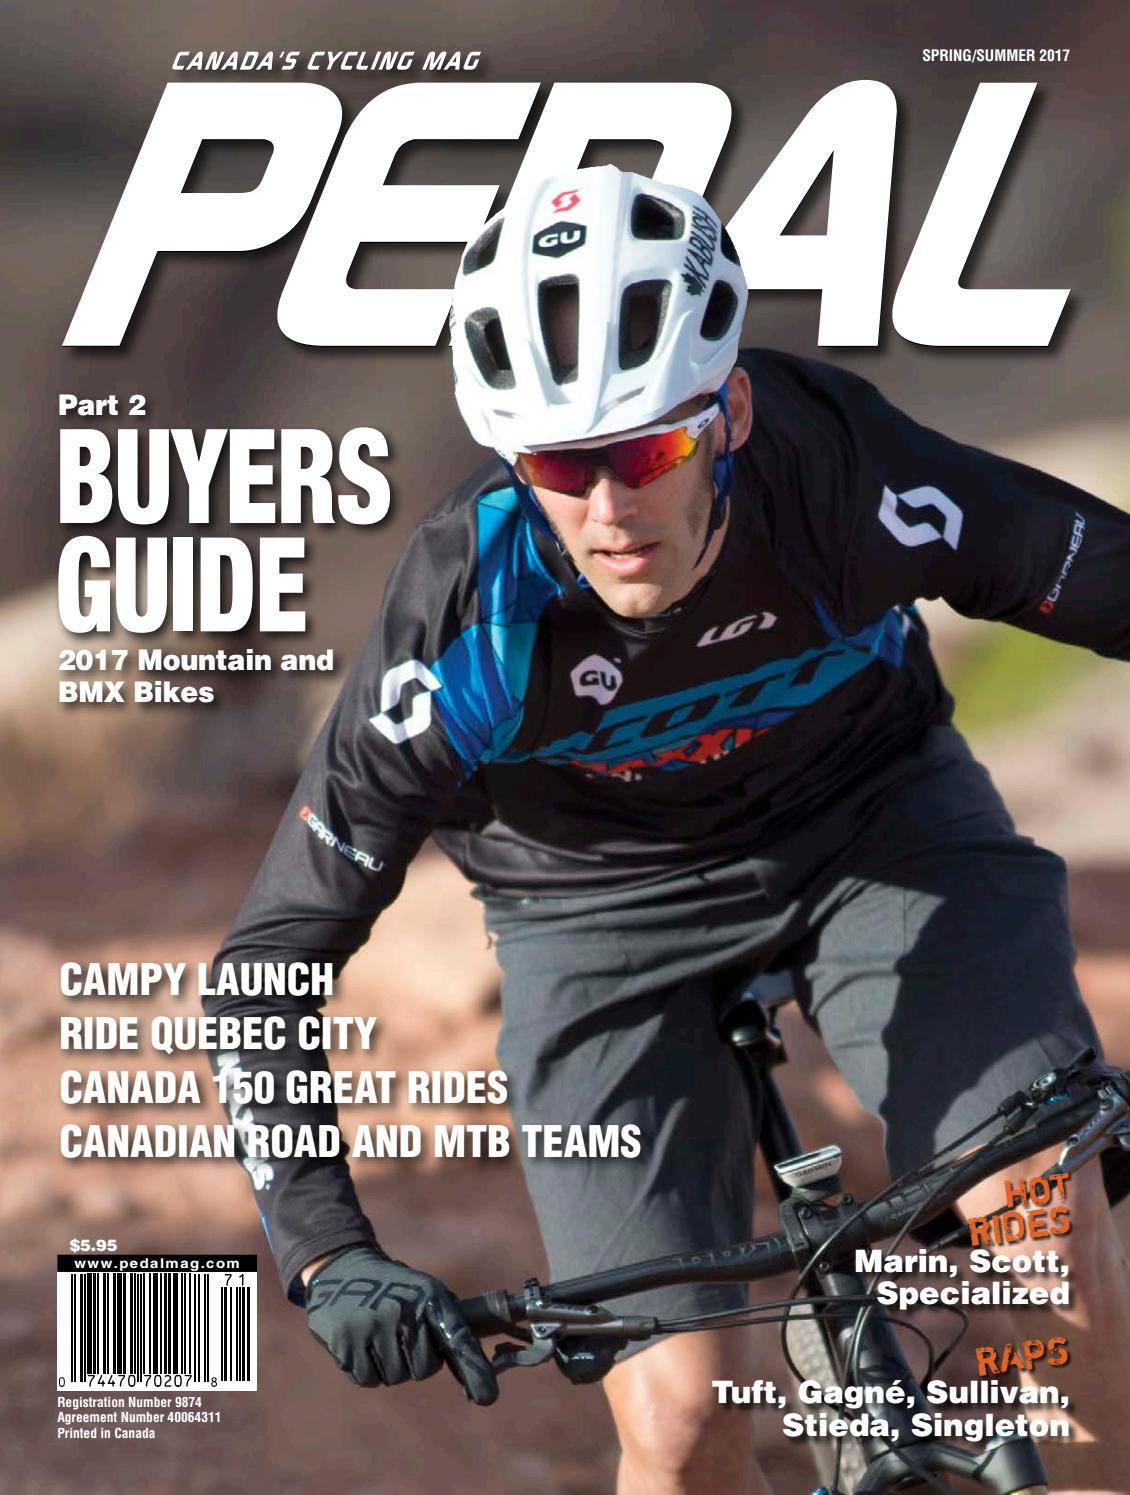 Pedal Spring Summer 2017 by Pedal Magazine - issuu 526e0286a